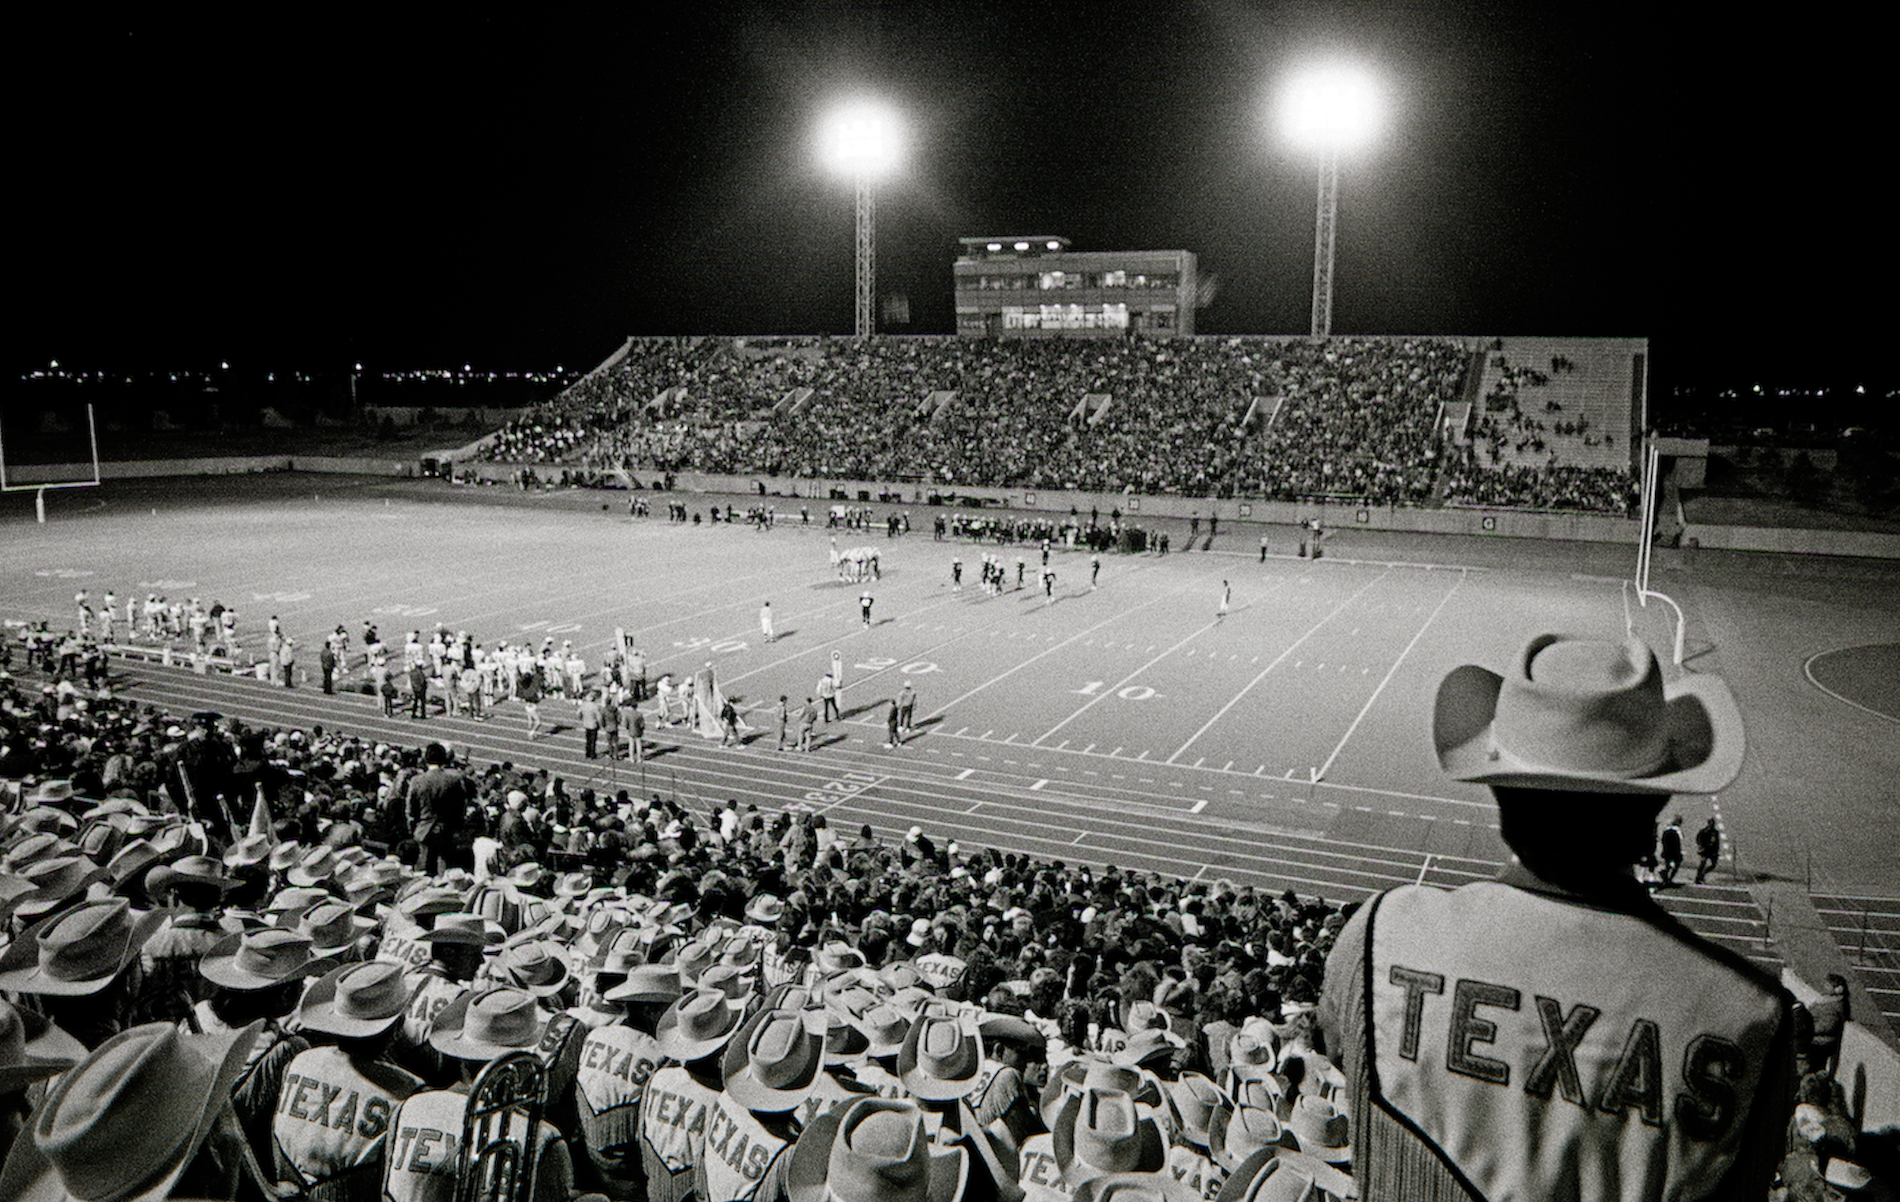 Black-and-white stadium scene with players on the field and an audience